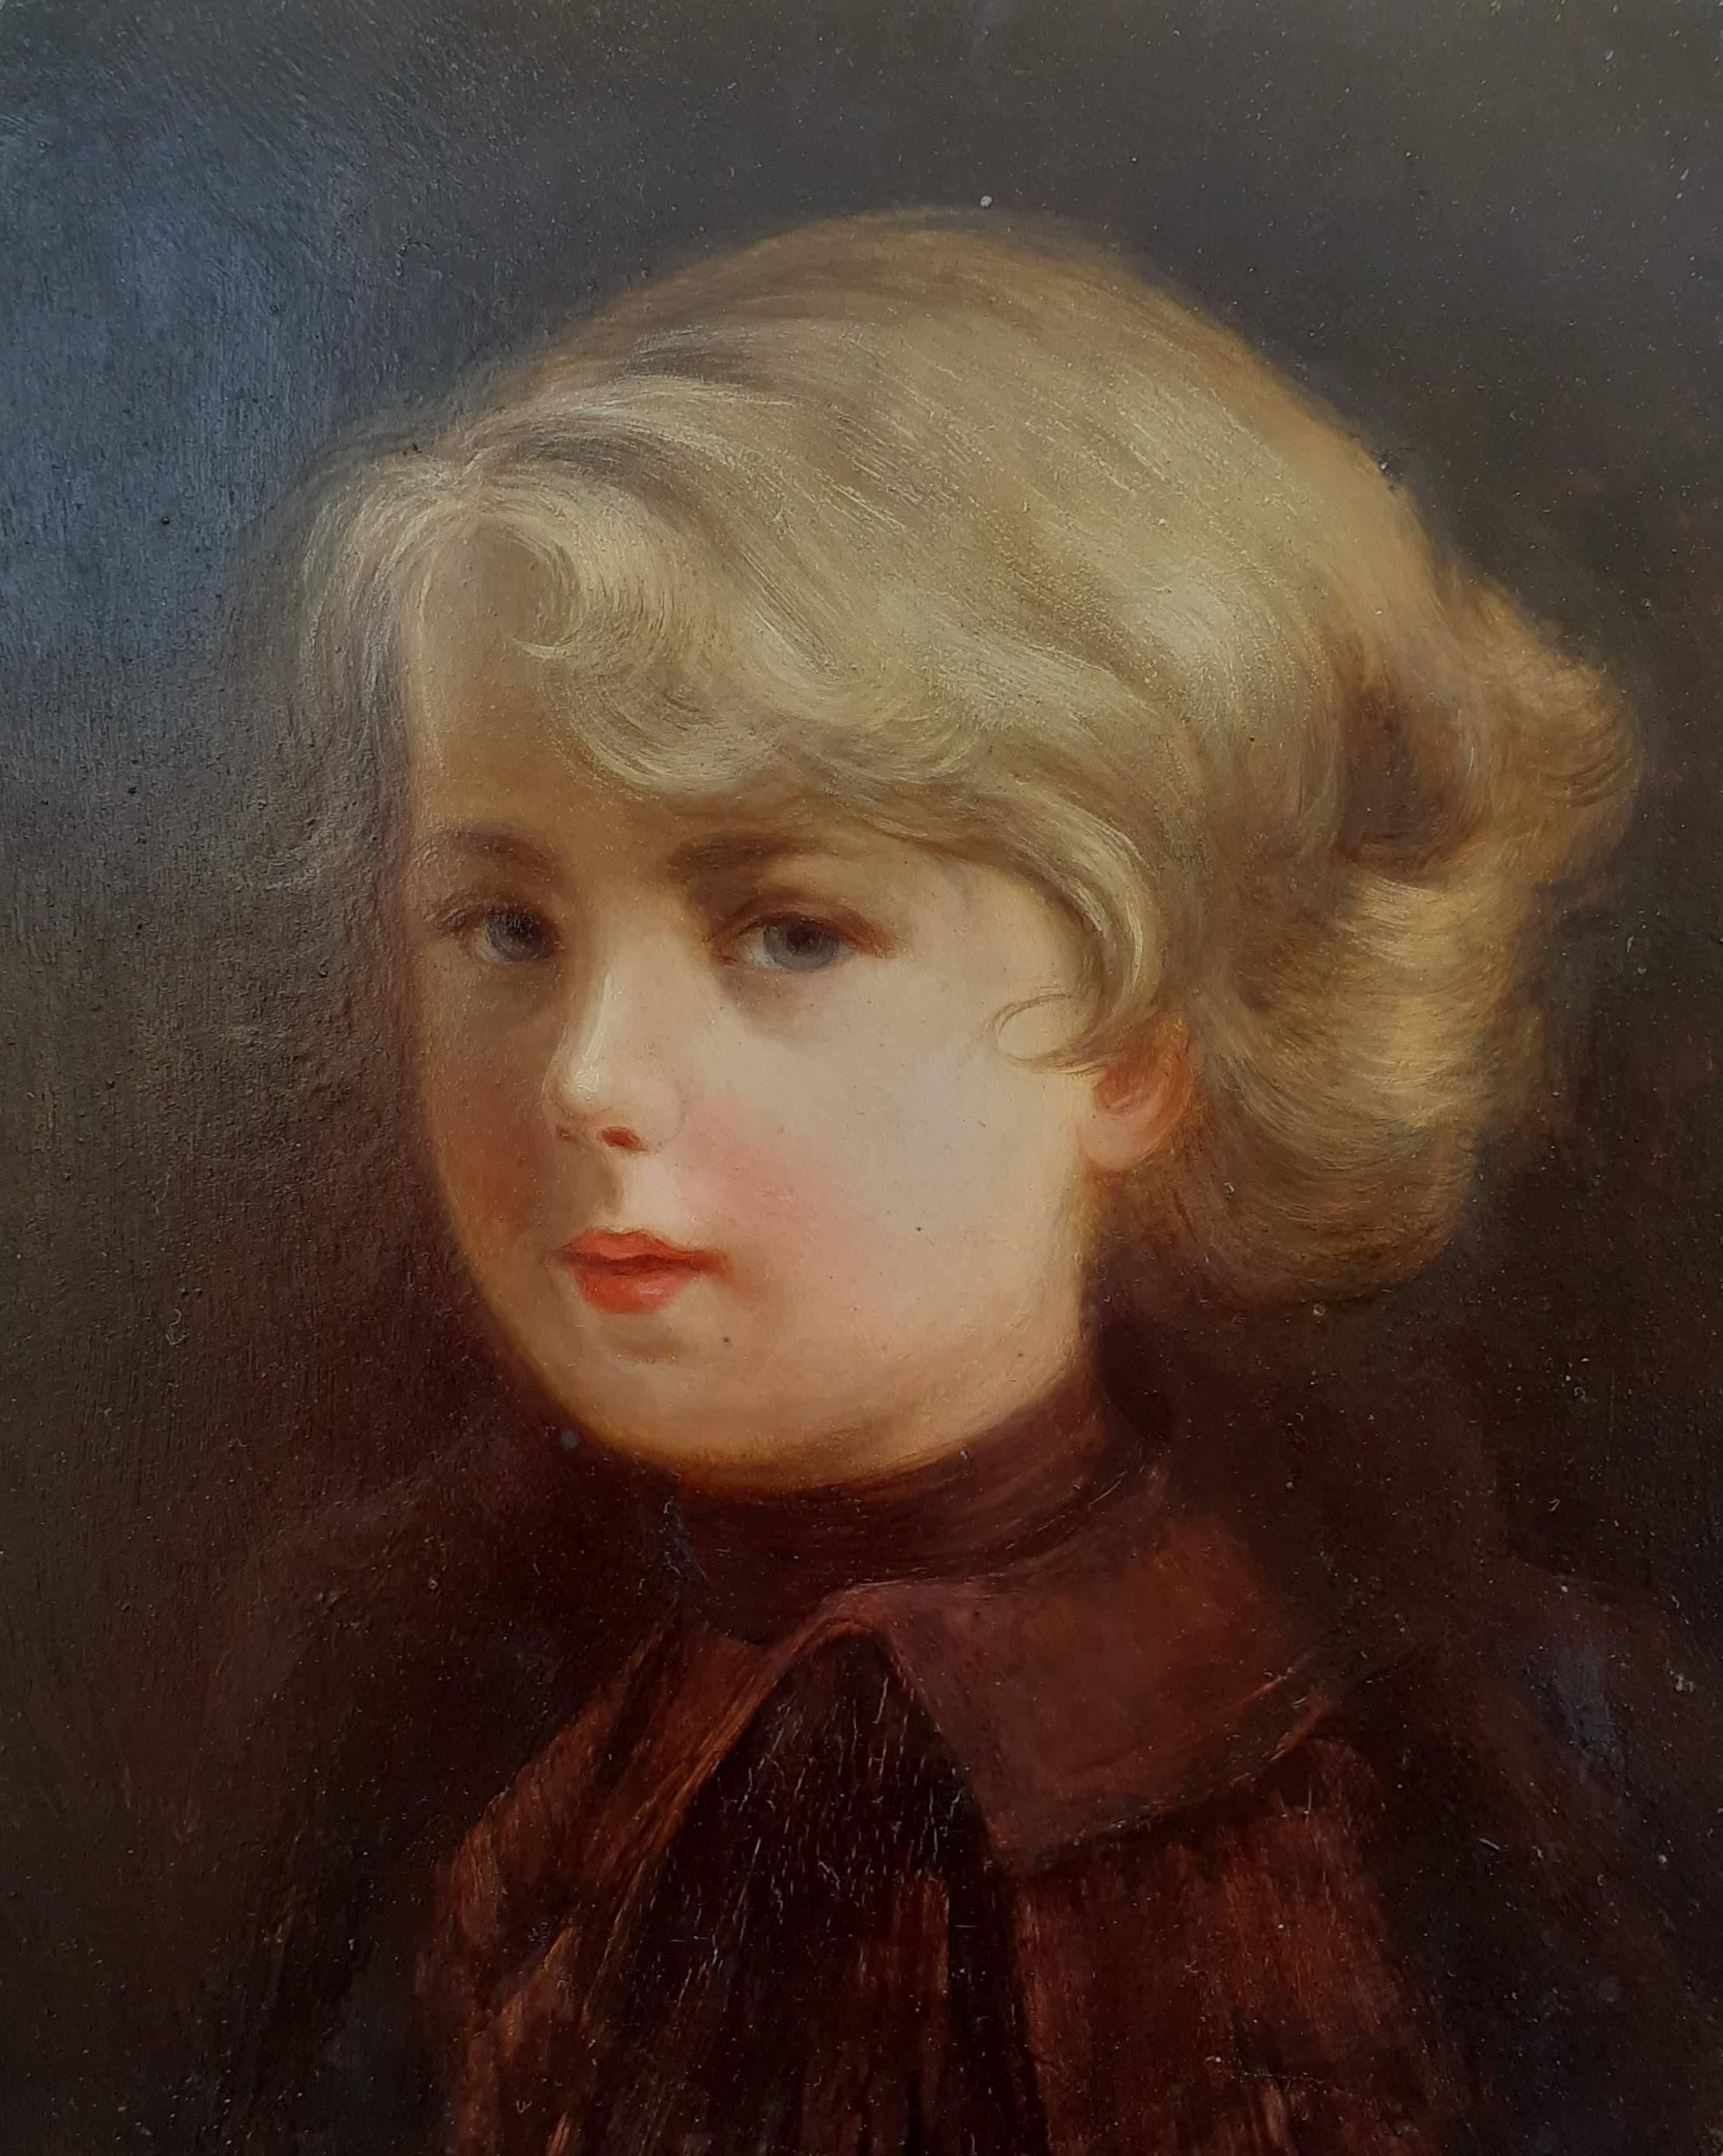 Presumed portrait of Napoleon II L'Aiglon as a boy, early antique oil painting